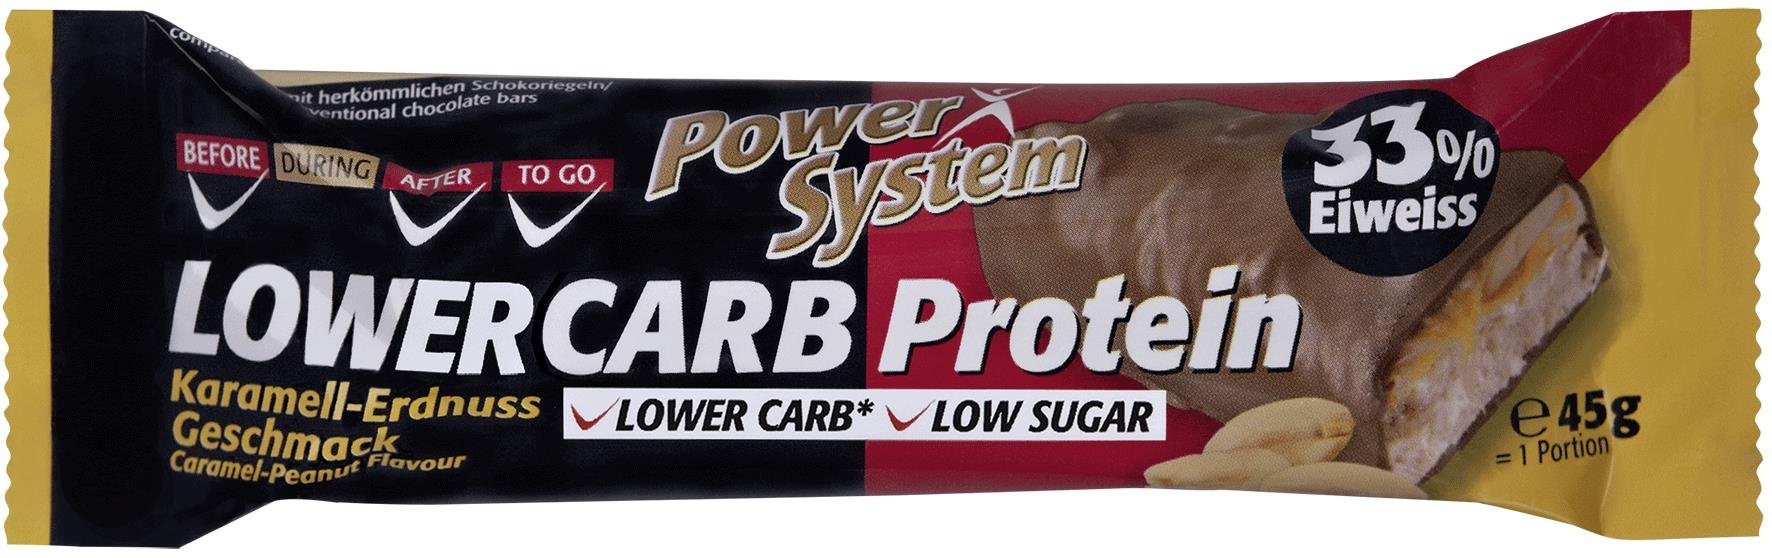 Power System LOWER CARB Protein Bar 33% Caramel Peanut 45g